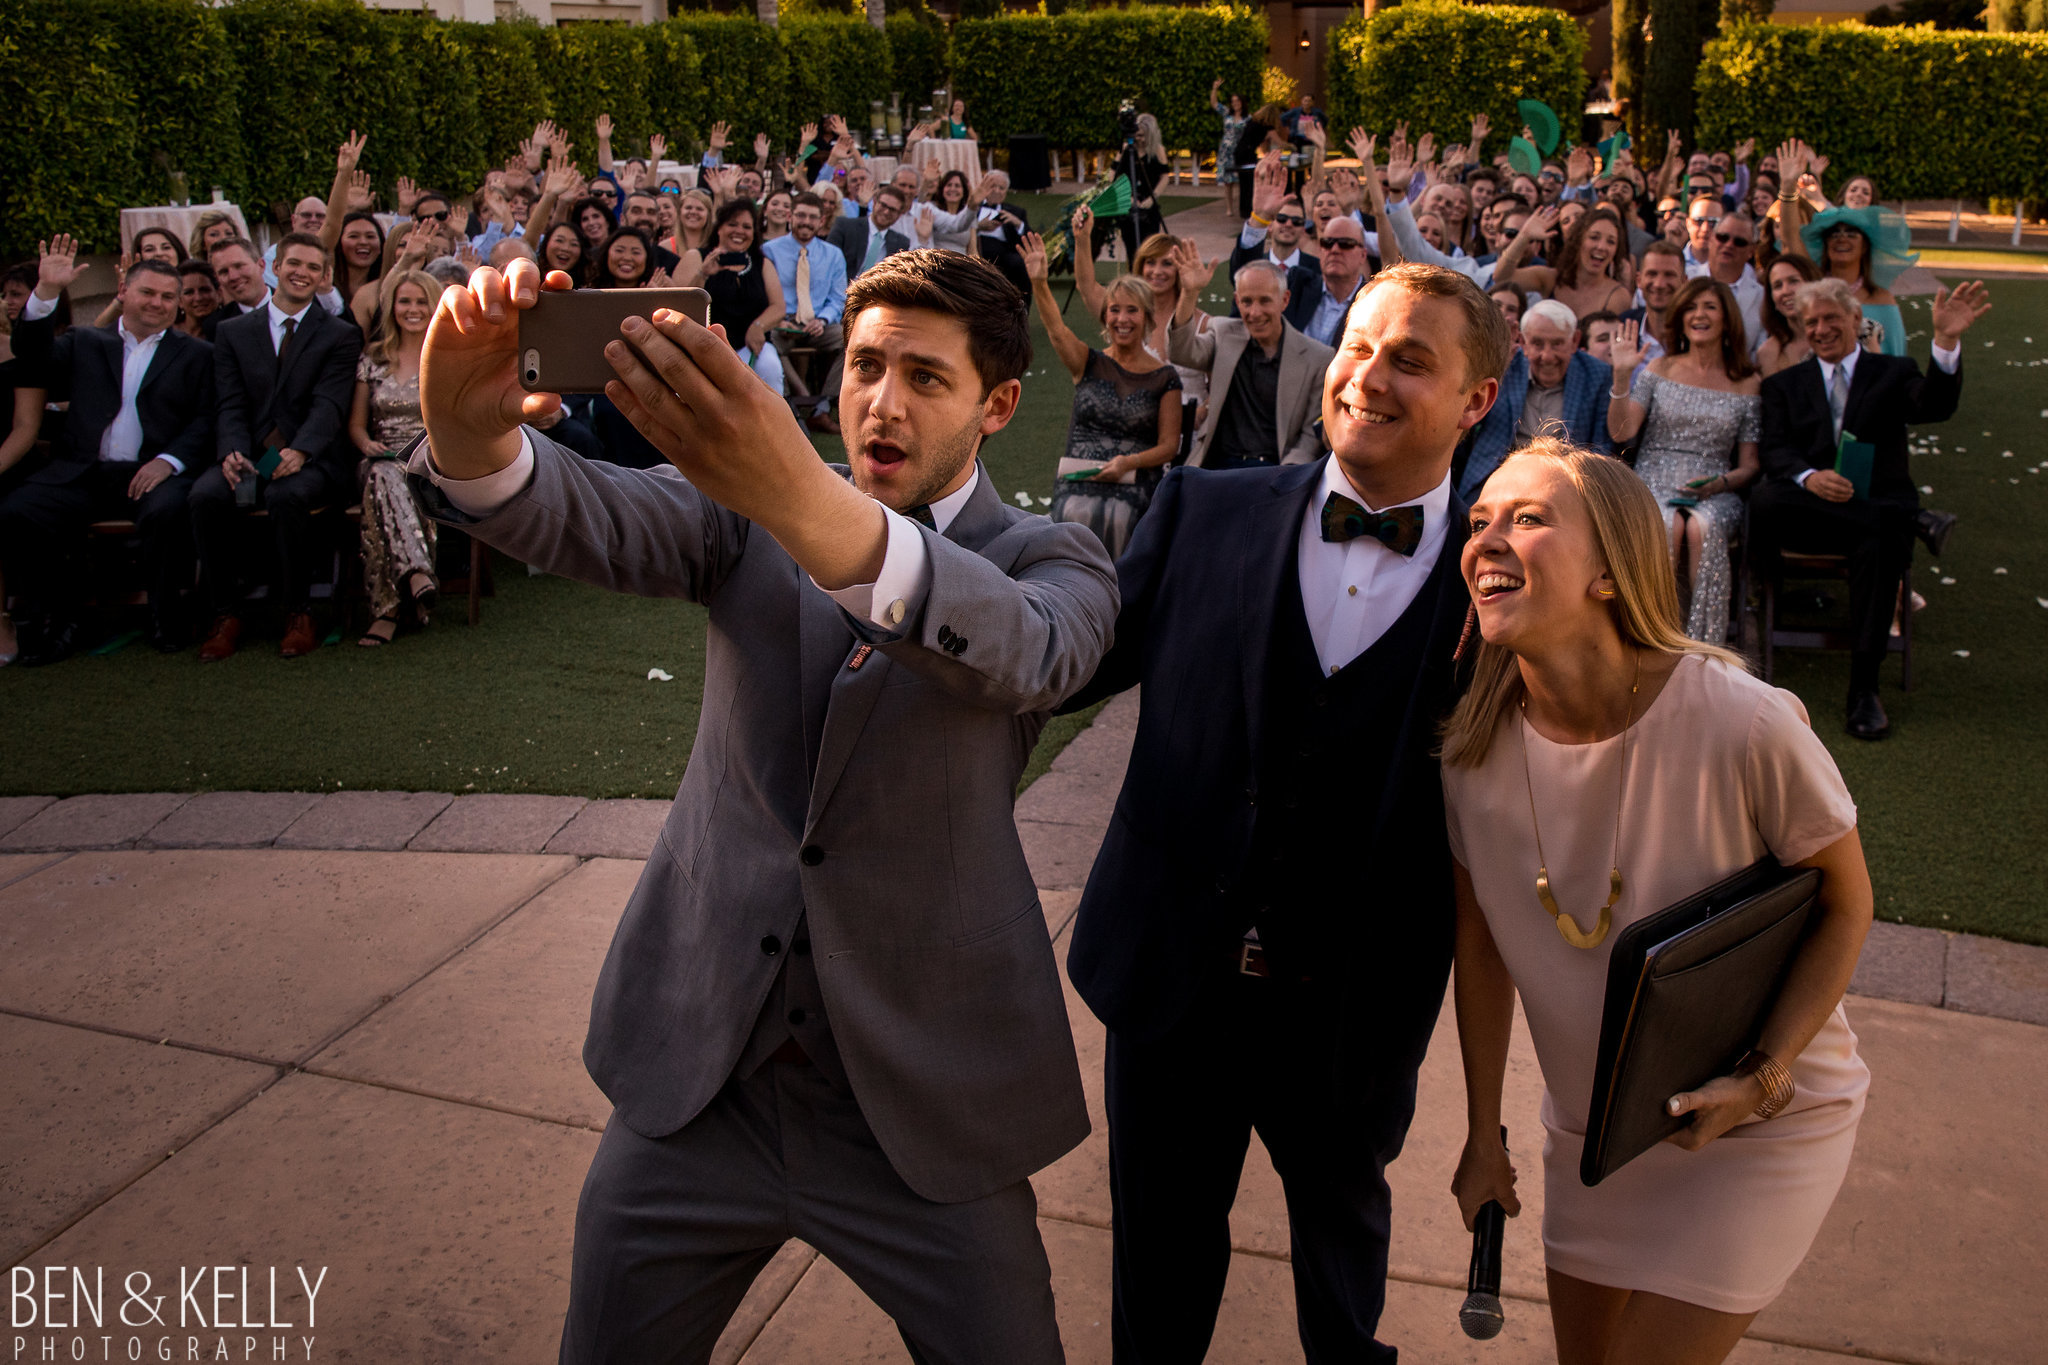 17 wedding selfie wedding couple ceremony selfie wedding selfie with guests Life Design Events photo by Ben and Kelly Photography.jpg